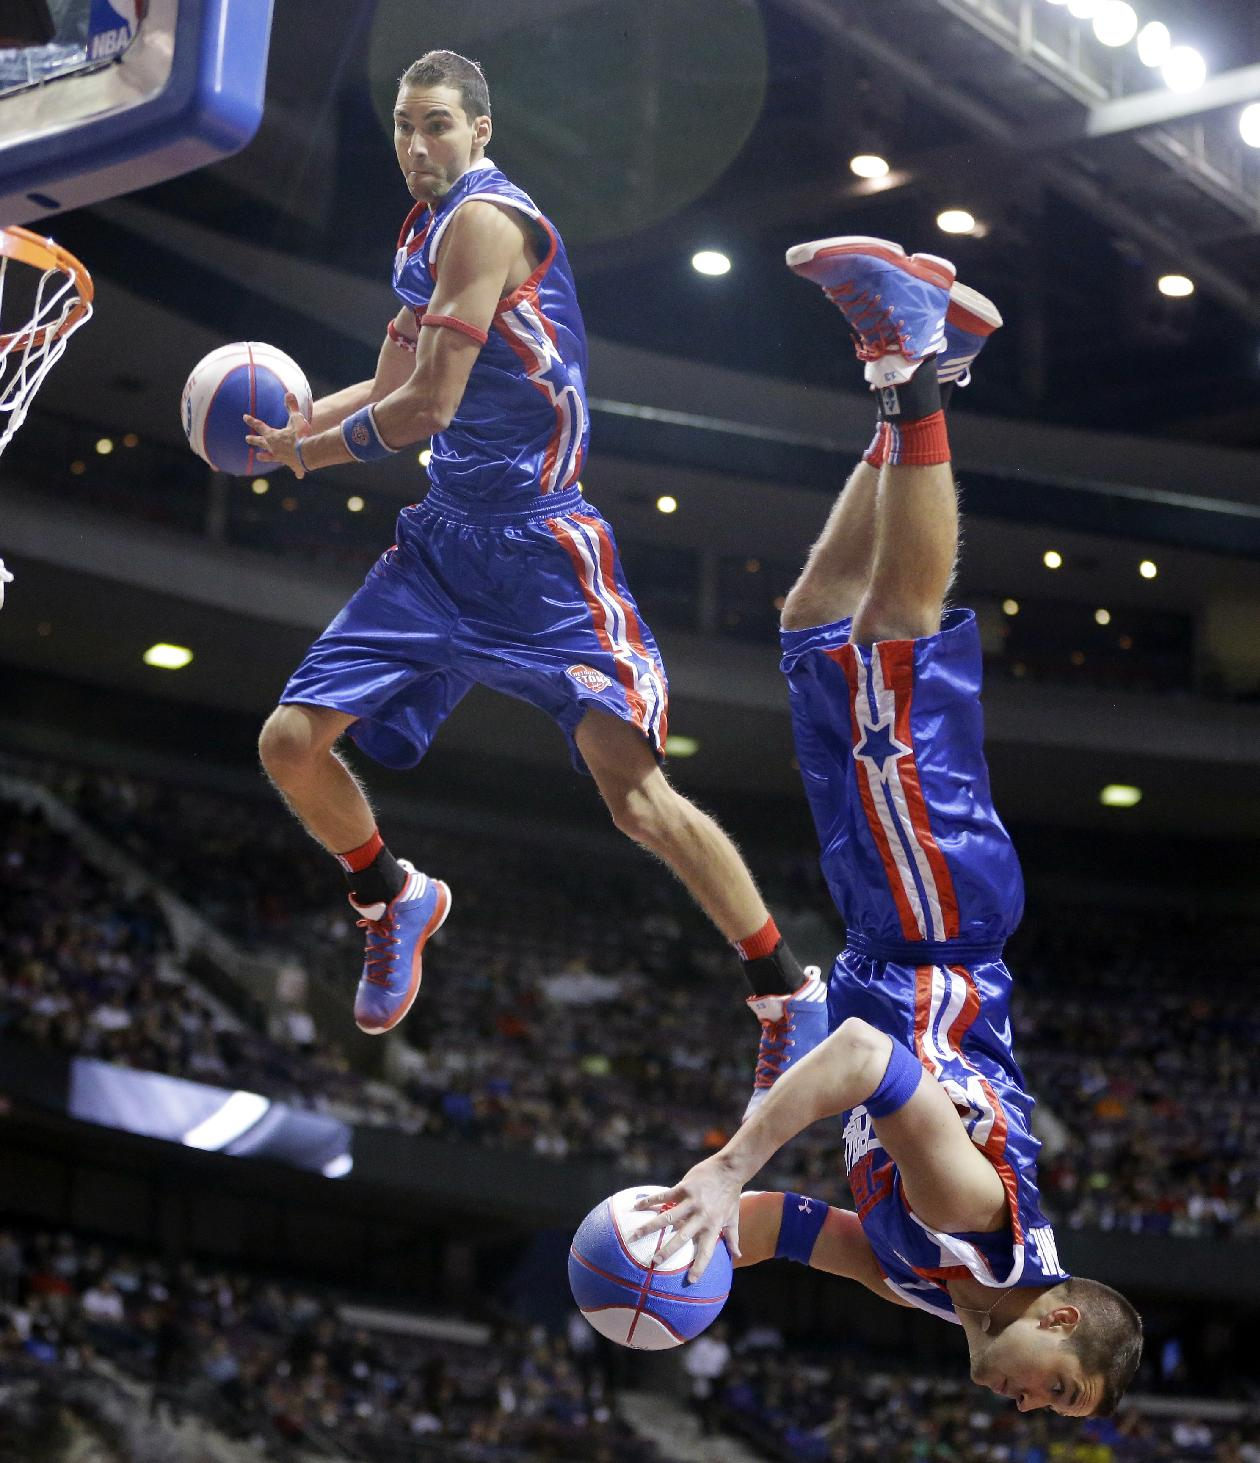 Members of the Detroit Pistons Flight Crew perform their dunks during a break in the second half of an NBA basketball game against the New York Knicks in Auburn Hills, Mich., Tuesday, Nov. 19, 2013